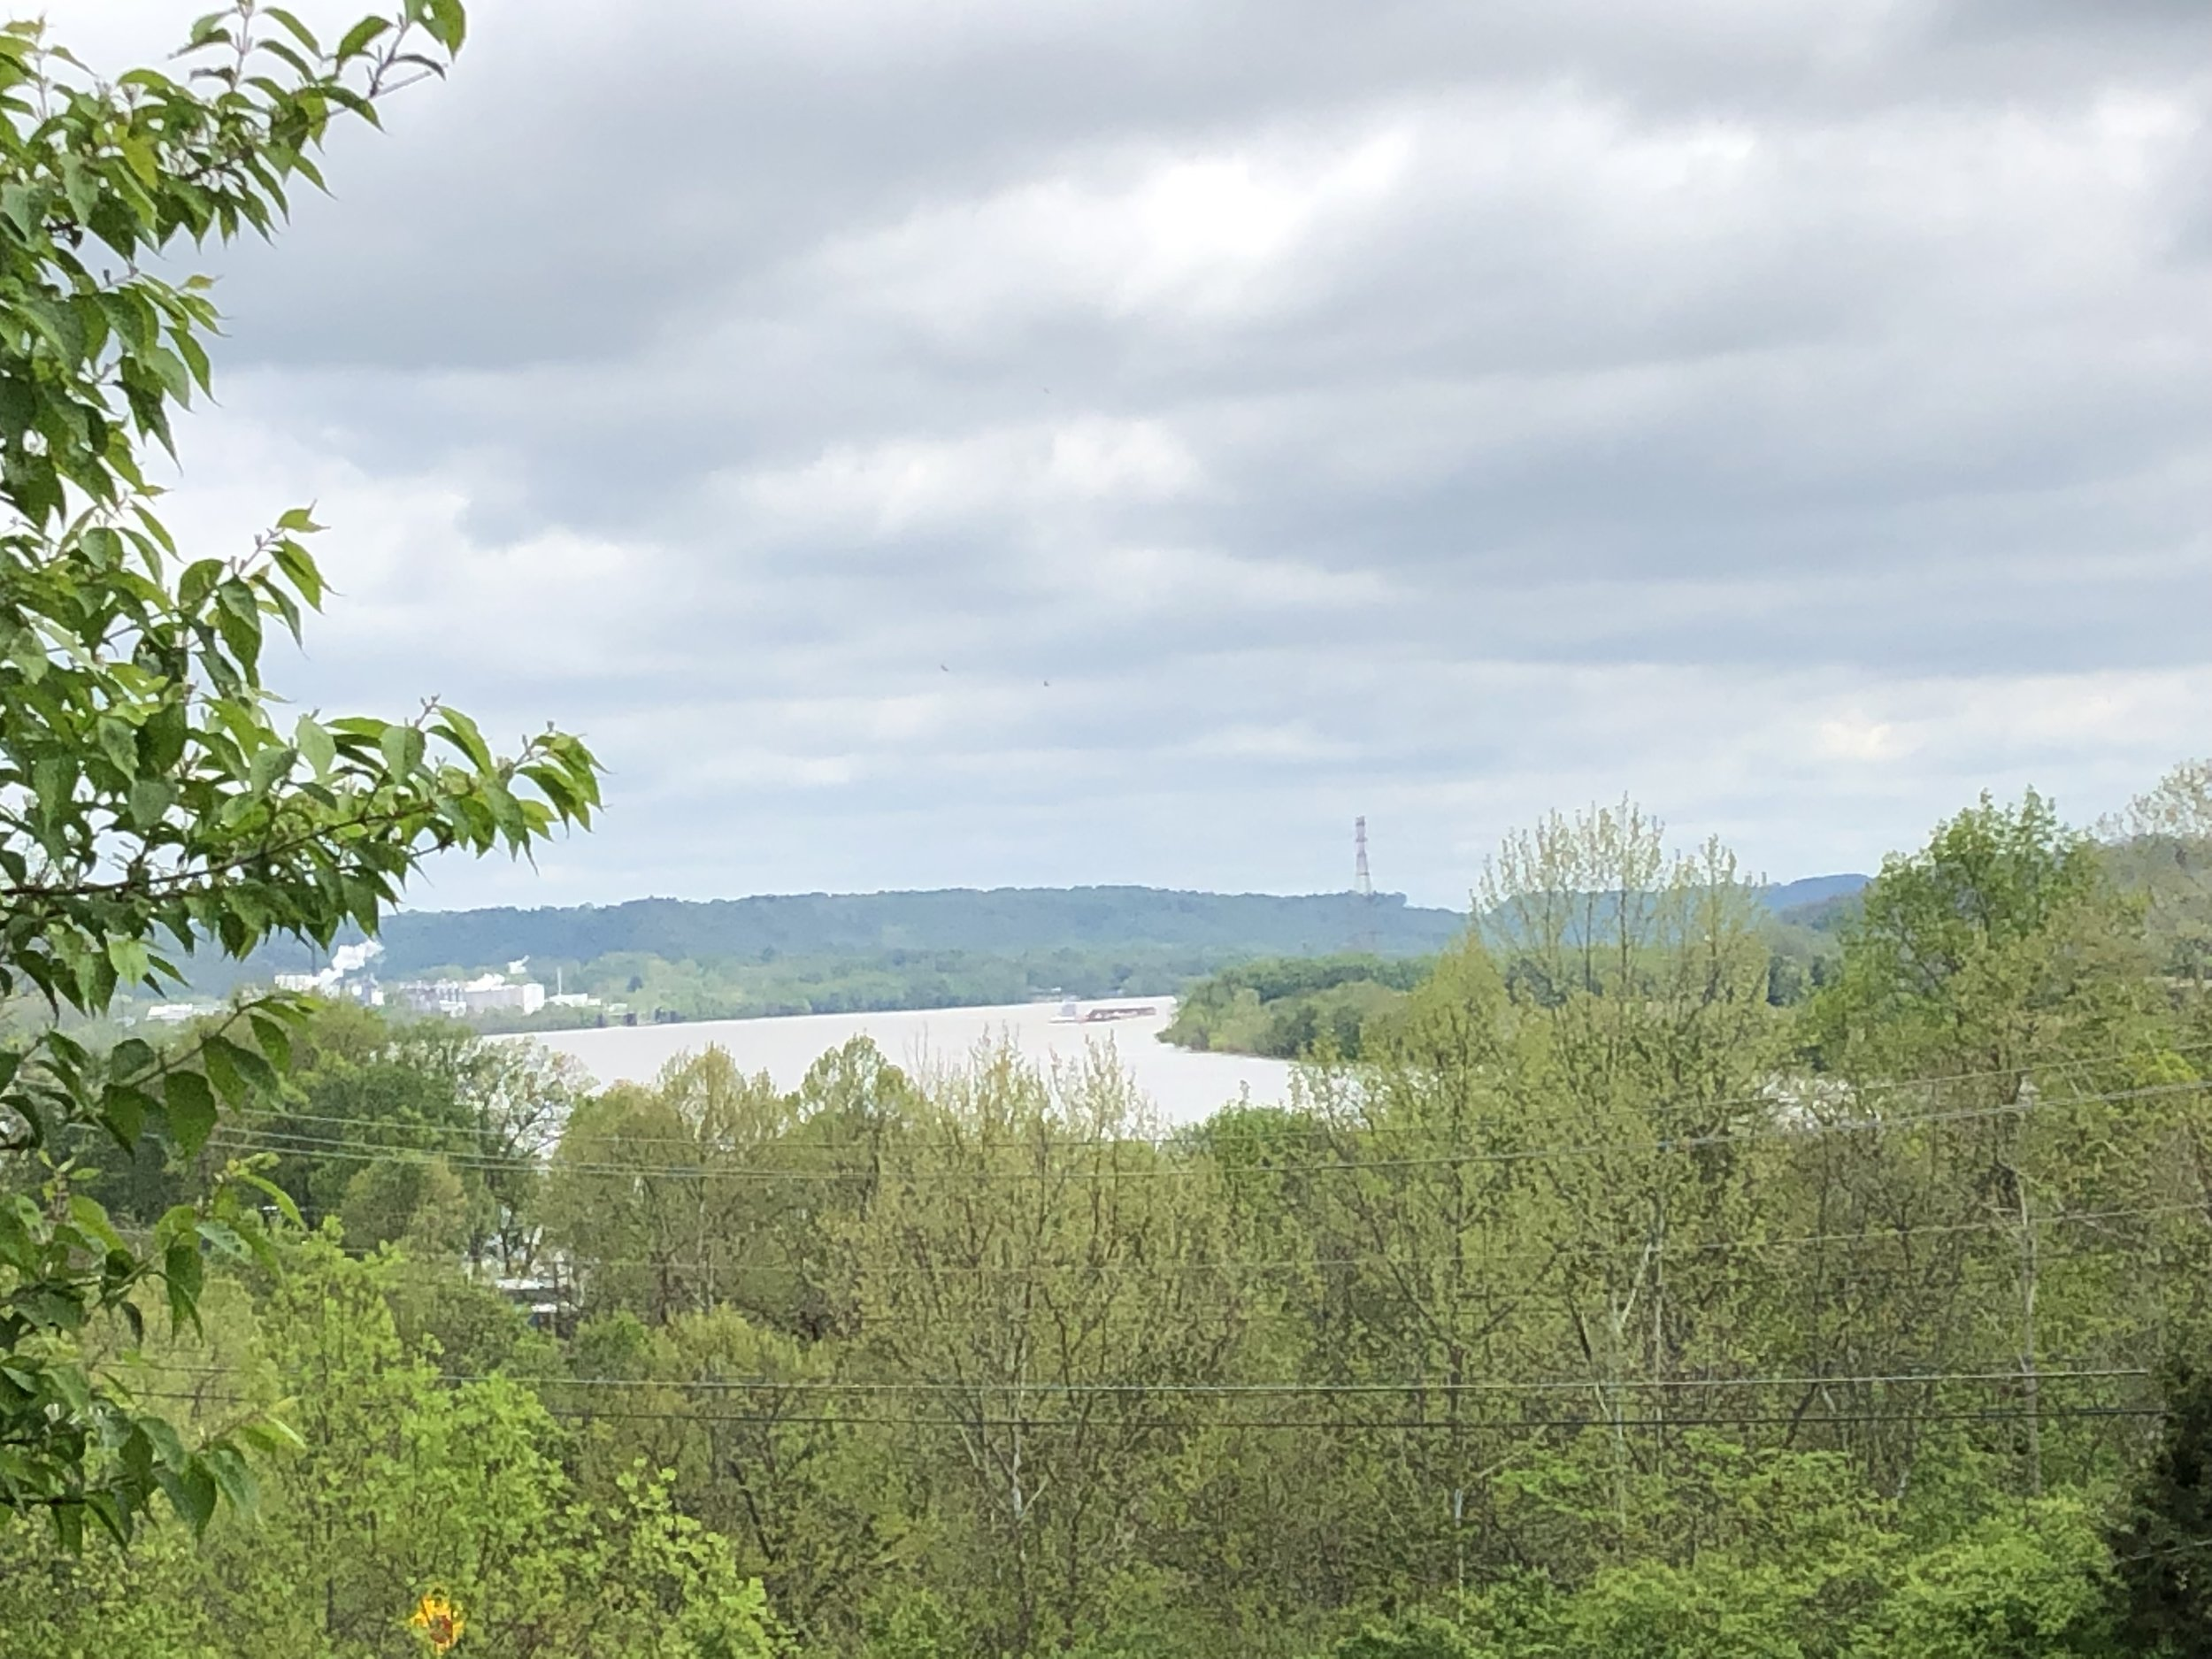 The view from Harrison's tomb. This is standing in Ohio looking across the river at Kentucky. It reminded me of Alexis de Tocqueville's vivid description of the stark contrast between free Ohio and slaveholding Kentucky during the 1840s. The passage is quoted in Part IV, Chapter 1 of  A Presidents Story . Read it again—I think it's one of the best arguments ever against slavery.